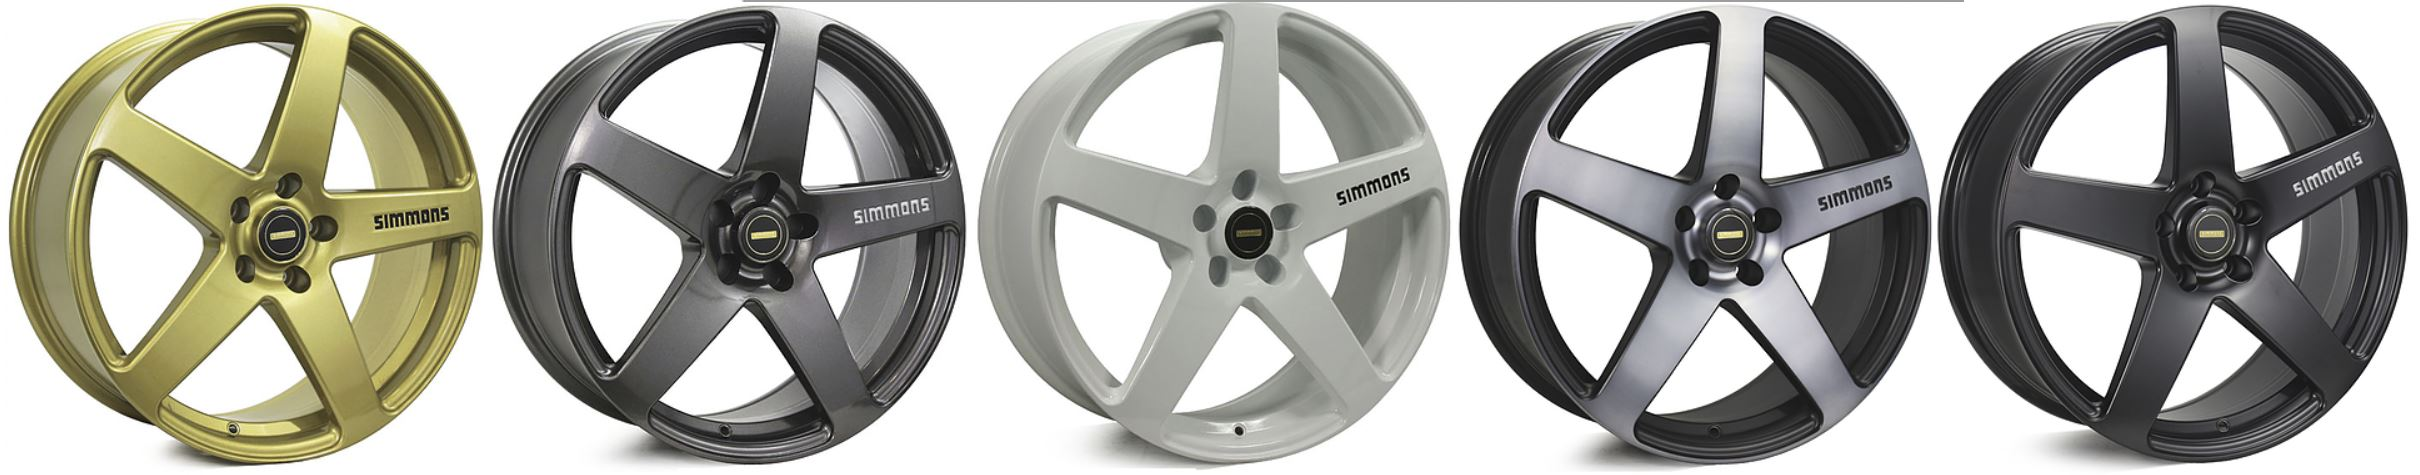 18X8.5 SIMMONS FR-1 WHEEL PACKAGE